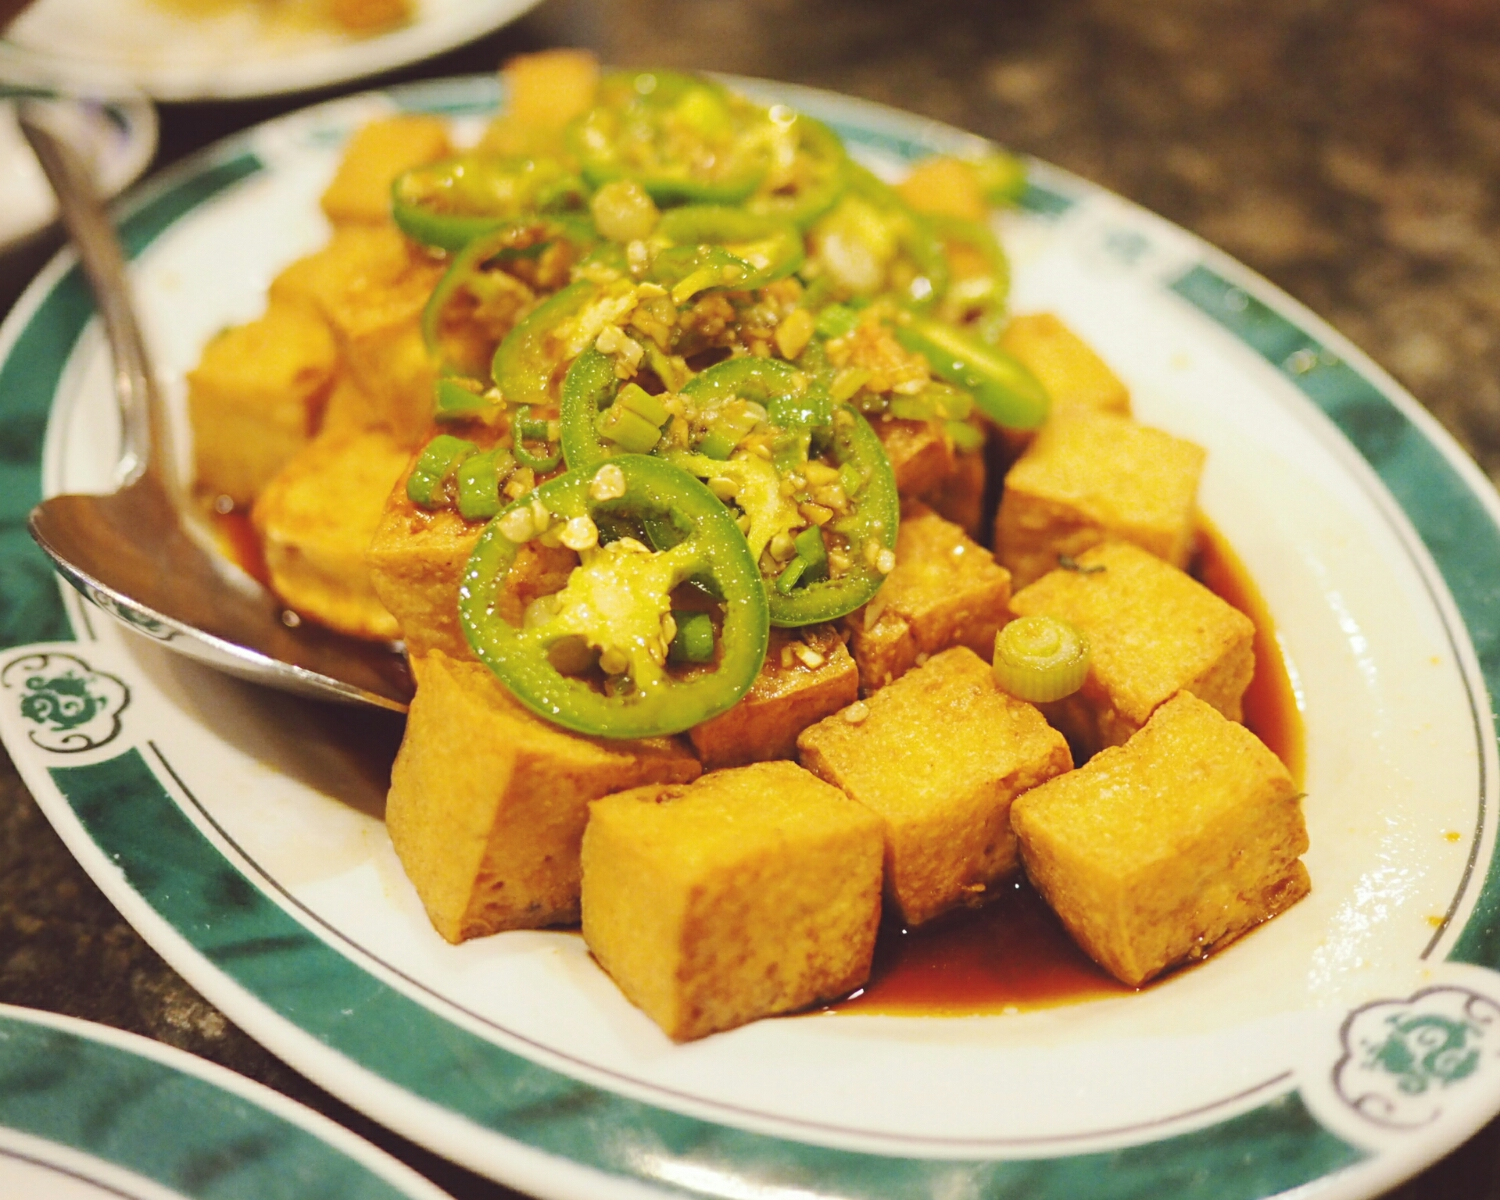 fried tofu with jalapeno, scallions, garlic.